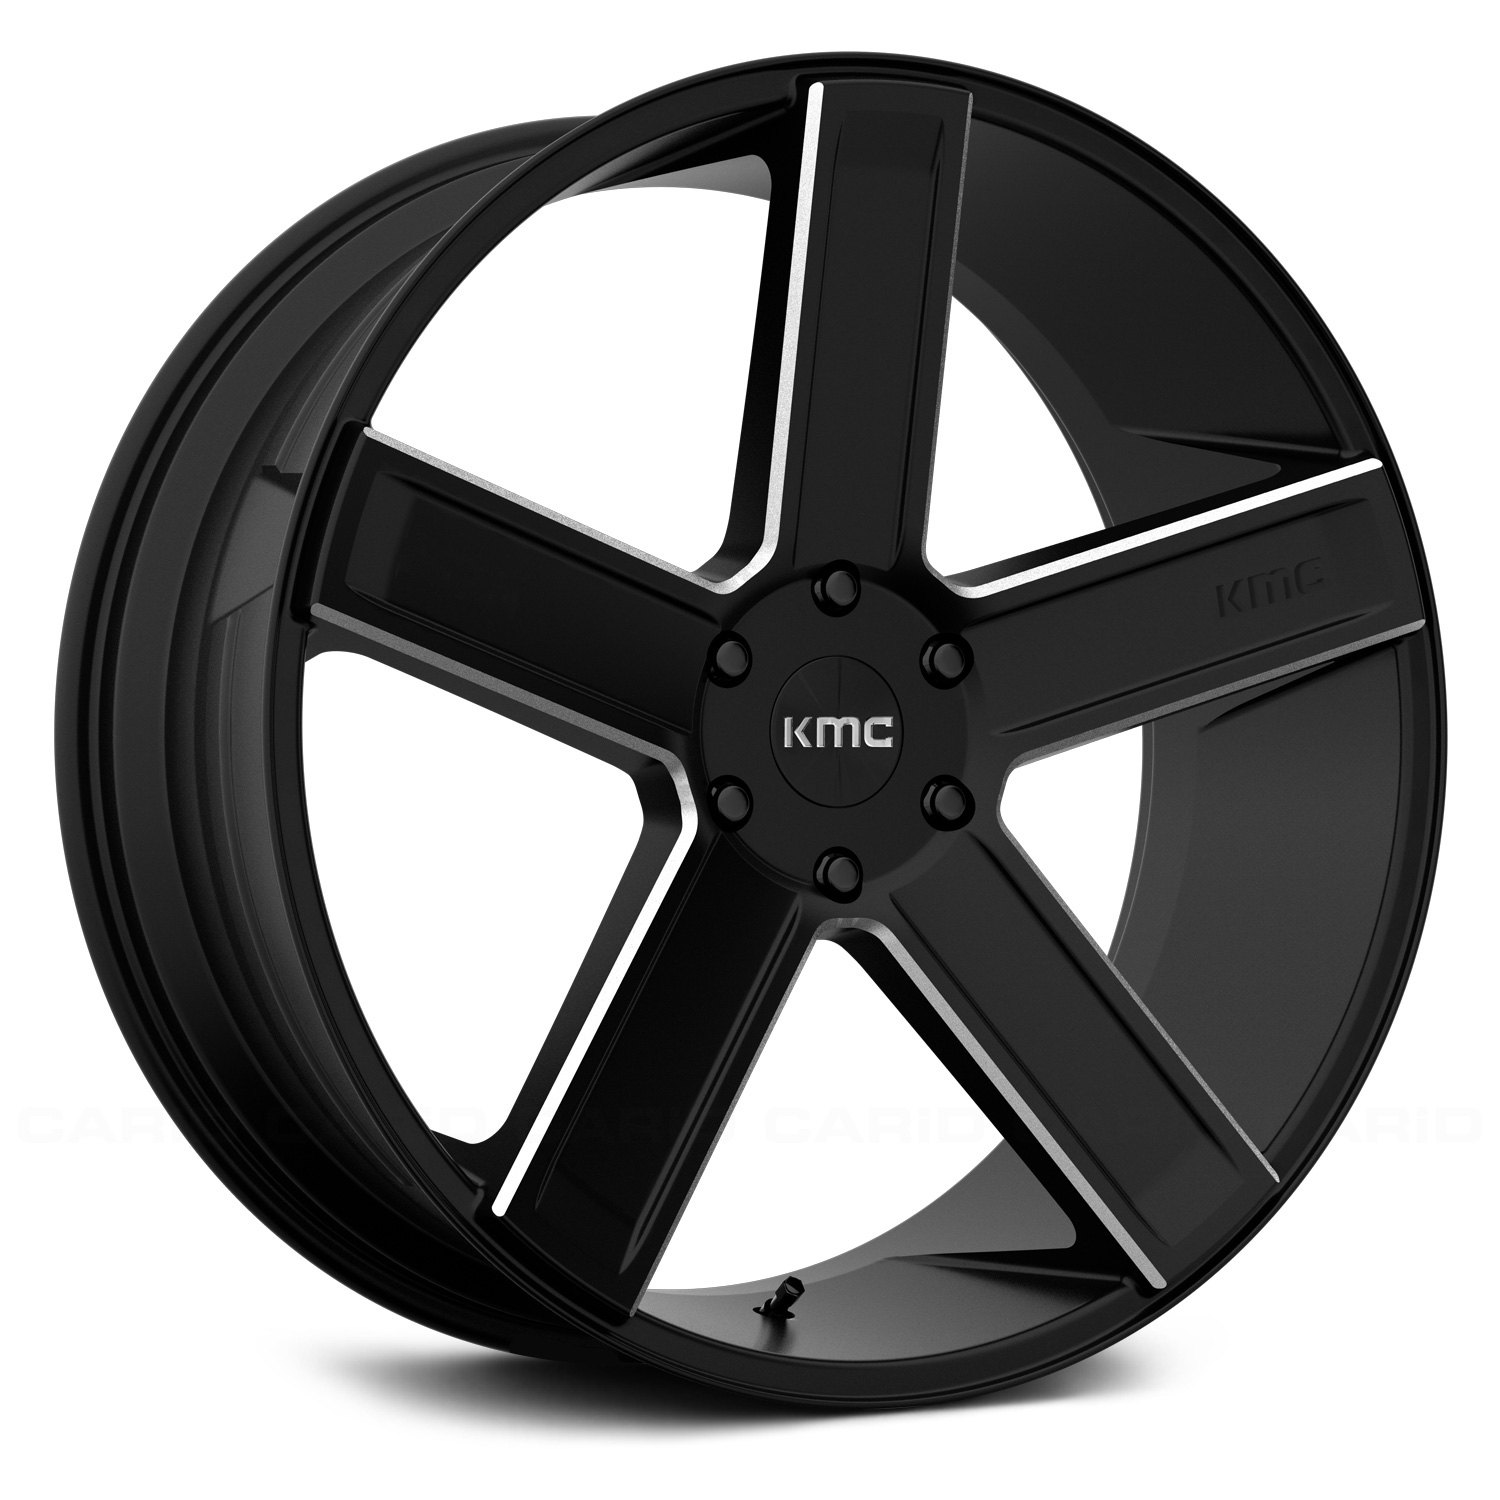 Kmc 174 Km702 Deuce Wheels Satin Black With Milled Accents Rims